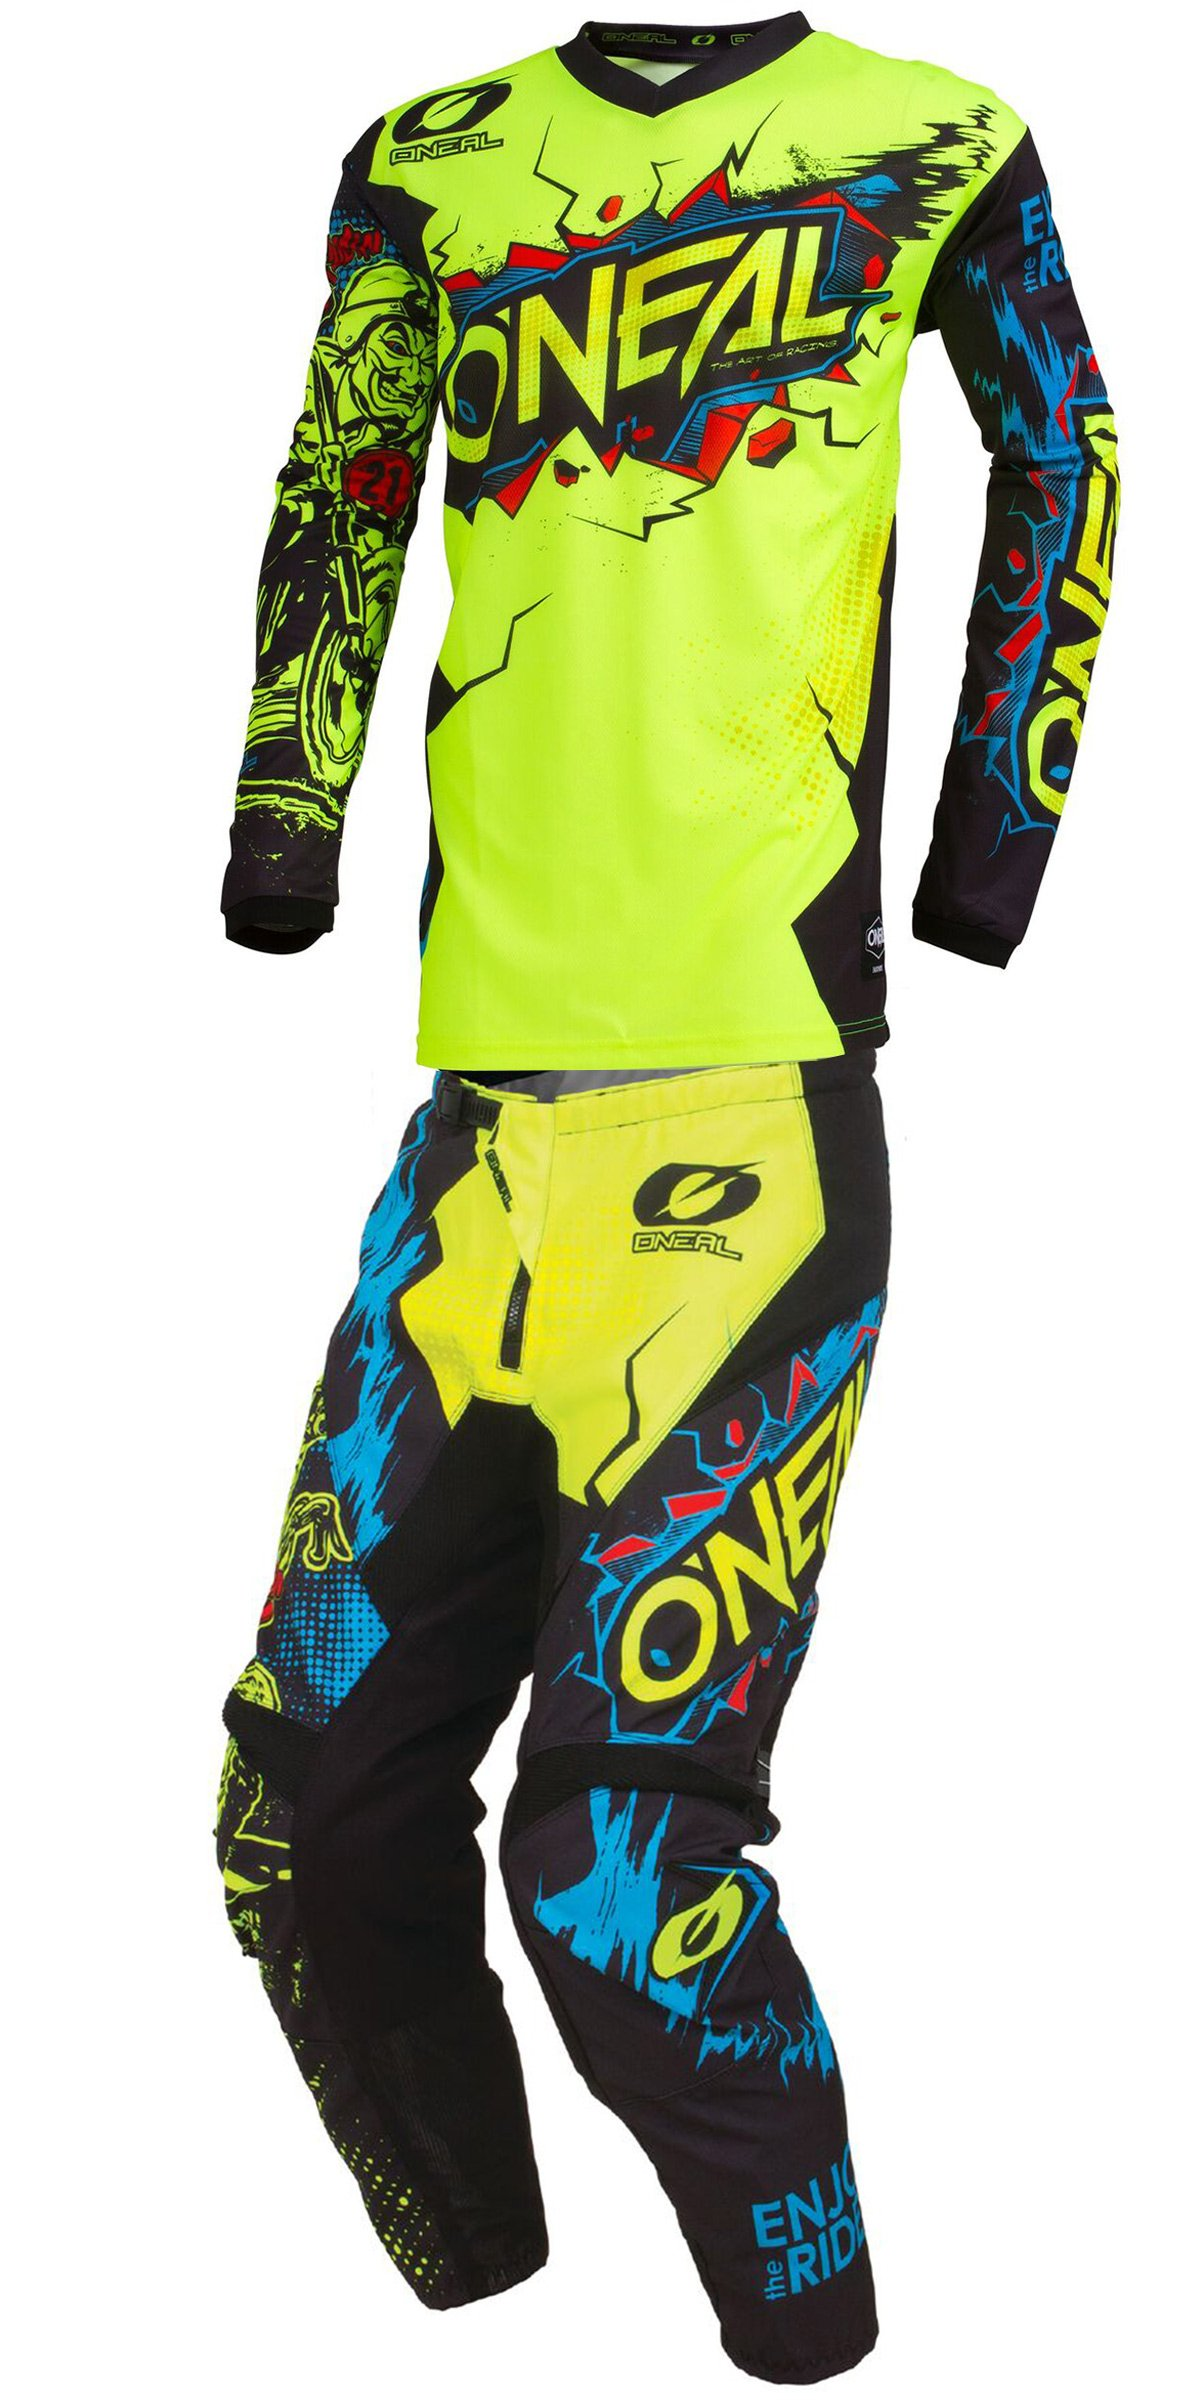 O'Neal - 2019 Element Villain (Mens HI-VIS NEON Yellow Large/32W) MX Riding Gear Combo Set, Motocross Off-Road Dirt Bike Jersey & Pant